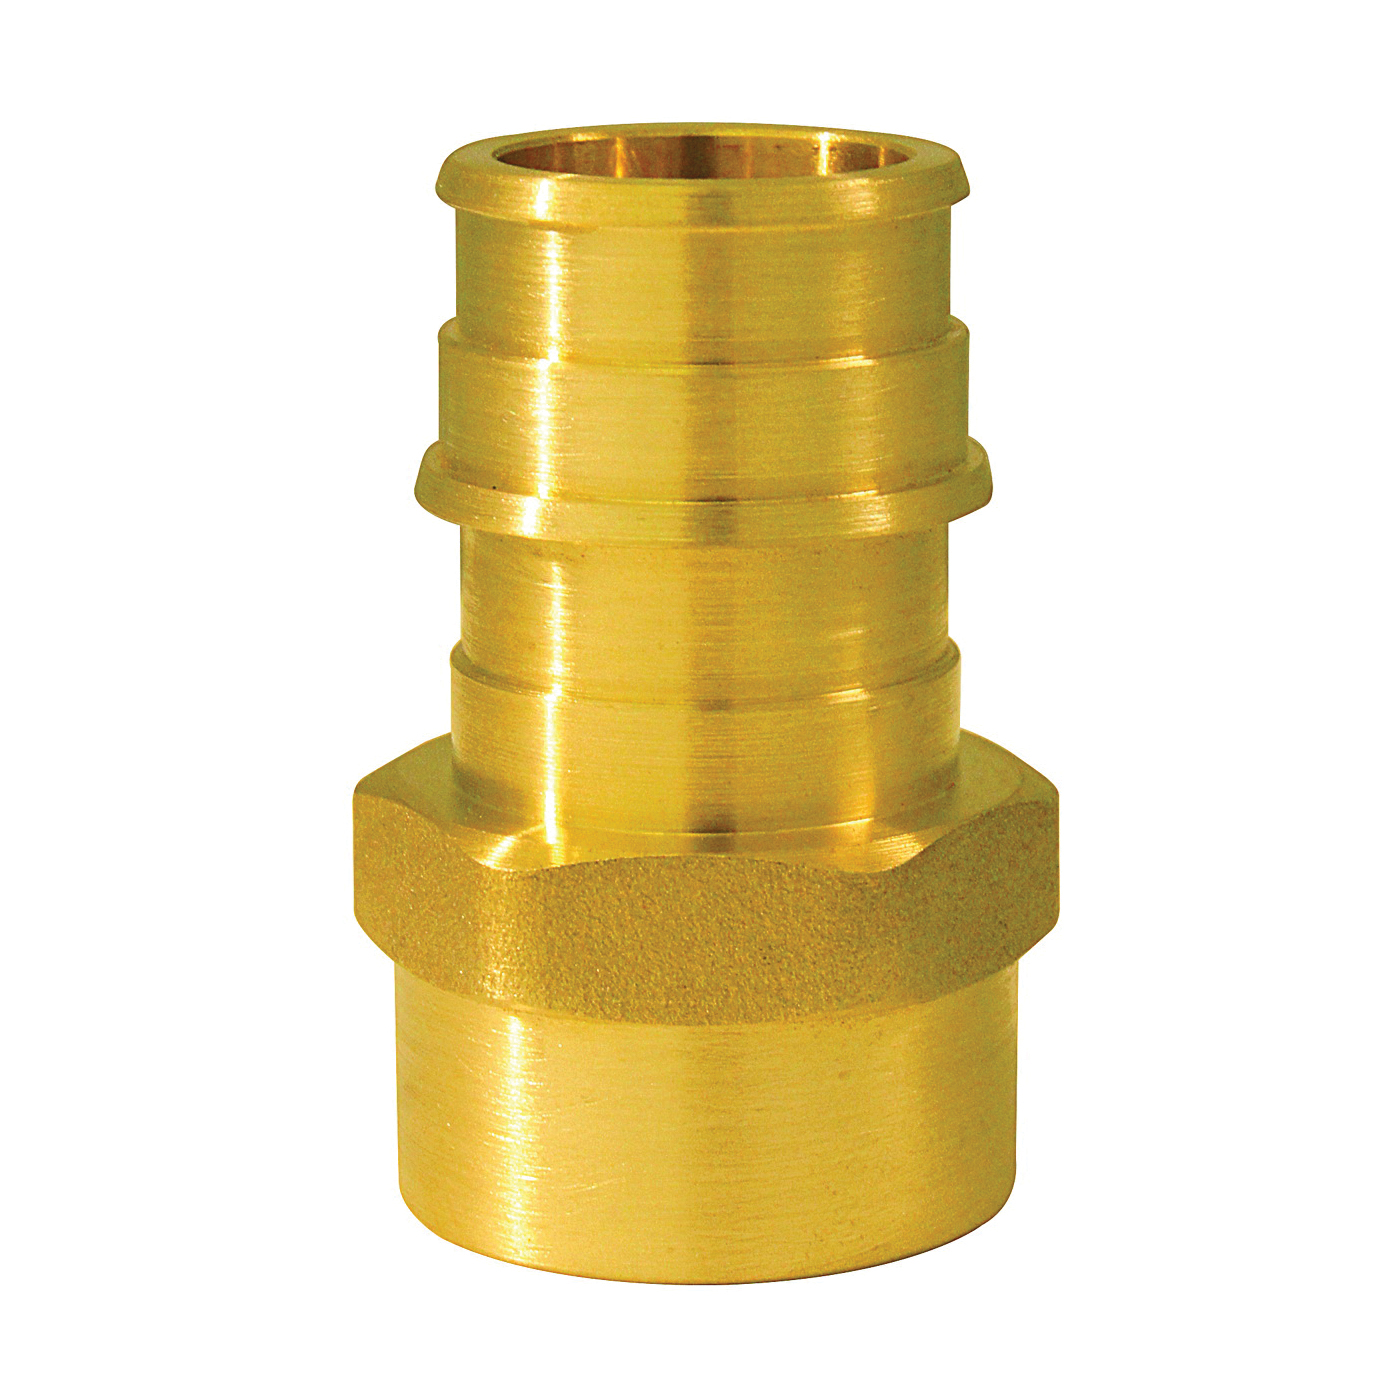 Picture of Apollo ExpansionPEX EPXFA34125PK Pipe Adapter, 3/4 x 1/2 in, Barb x FNPT, Brass, 200 psi Pressure